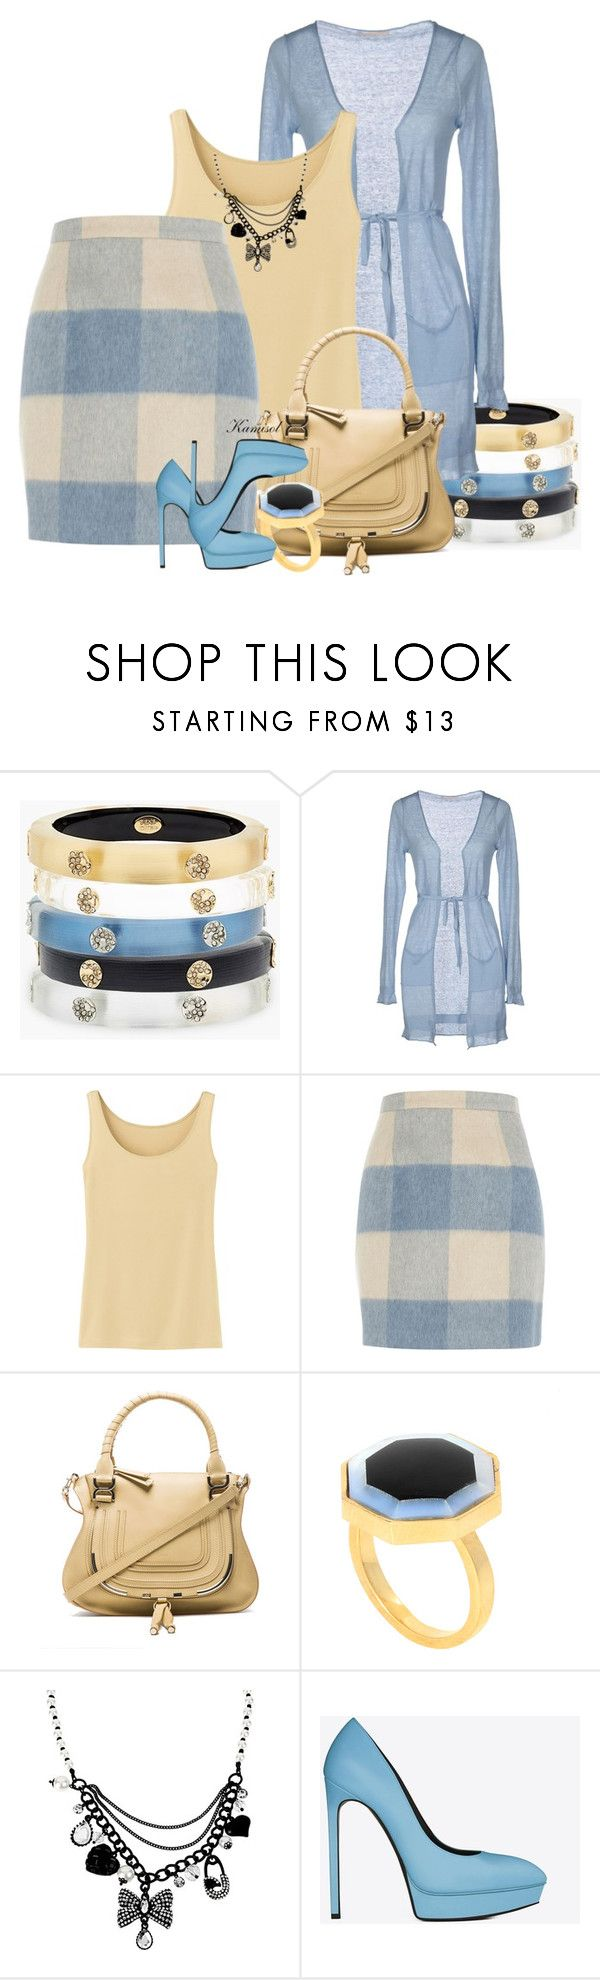 """""""Untitled #1958"""" by gigi-mcmillan ❤ liked on Polyvore featuring Alexis Bittar, Paolo Pecora, Uniqlo, River Island, Chloé, Kelly Wearstler, Betsey Johnson and Yves Saint Laurent"""